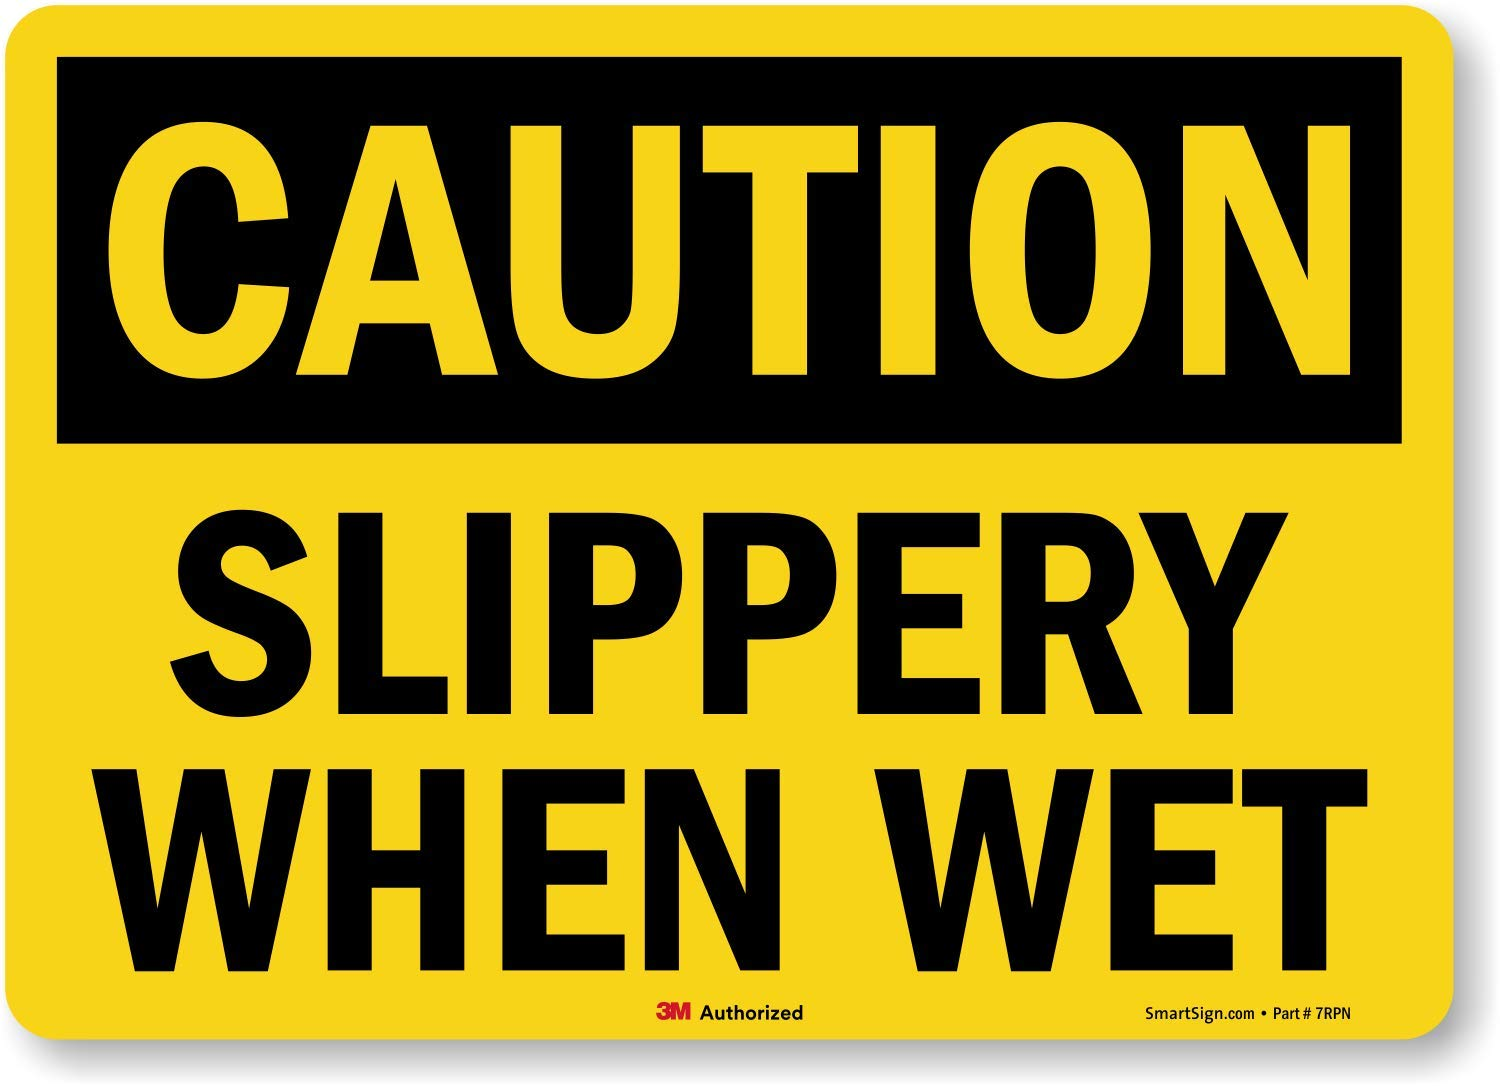 """Caution - Slippery When Wet"" Label by SmartSign 